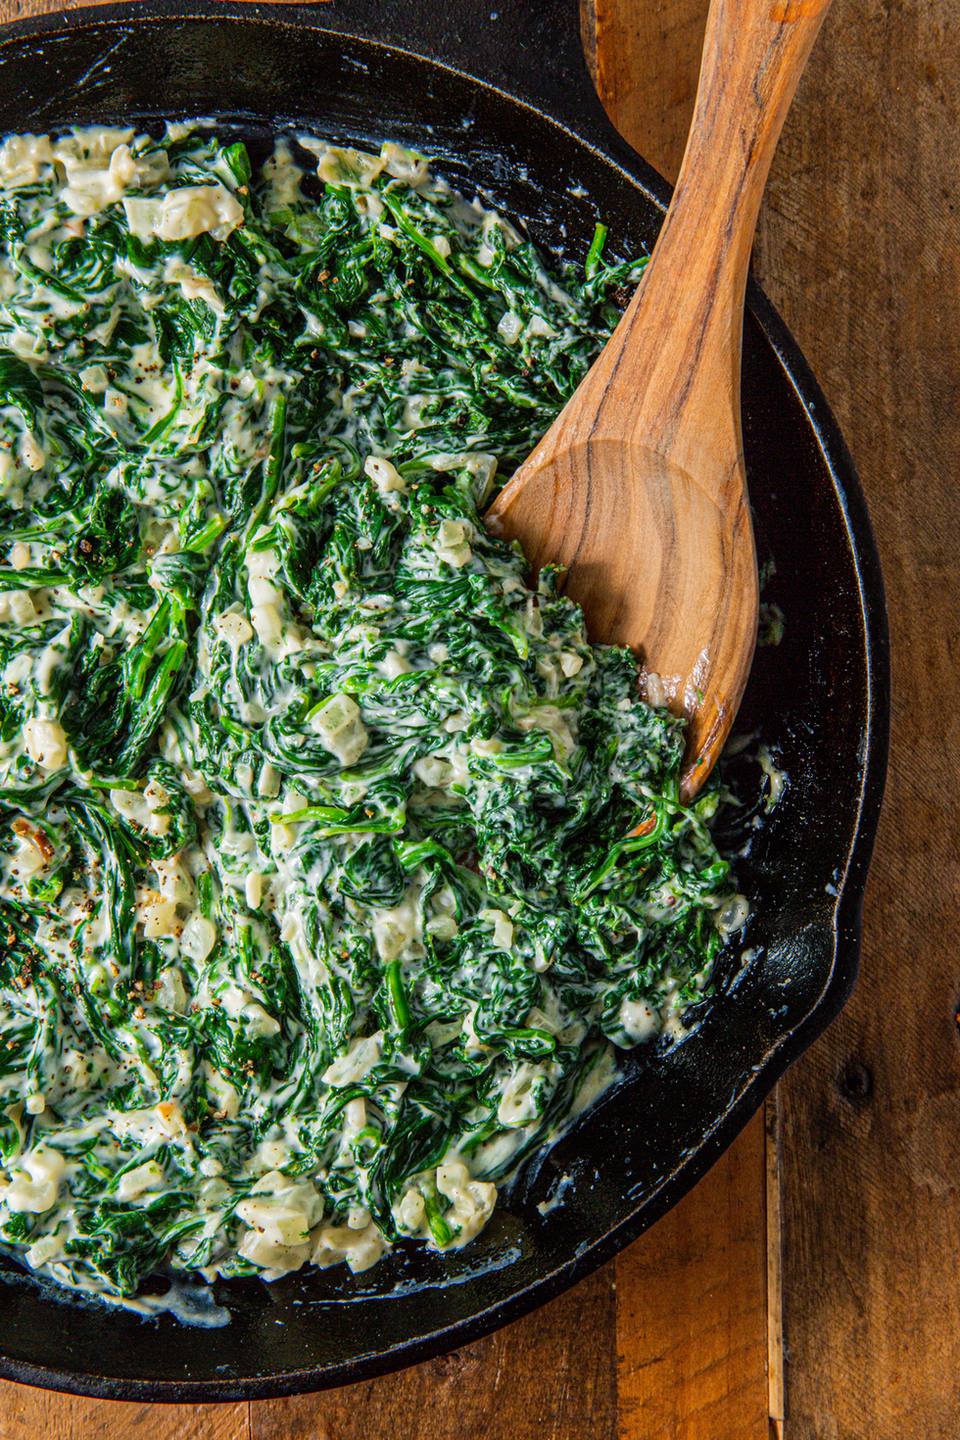 """<p>Creamed spinach is a simple side dish that is also the perfect way to use up any dying spinach. The creaminess will make you forget you're eating spinach and make everyone a fan. It seems like a lot of spinach, but it will boil down into almost nothing so don't skimp on it. </p><p>Get the <a href=""""https://www.delish.com/uk/cooking/recipes/a30425708/easy-creamed-spinach-recipe/"""" rel=""""nofollow noopener"""" target=""""_blank"""" data-ylk=""""slk:Creamed Spinach"""" class=""""link rapid-noclick-resp"""">Creamed Spinach</a> recipe. </p>"""